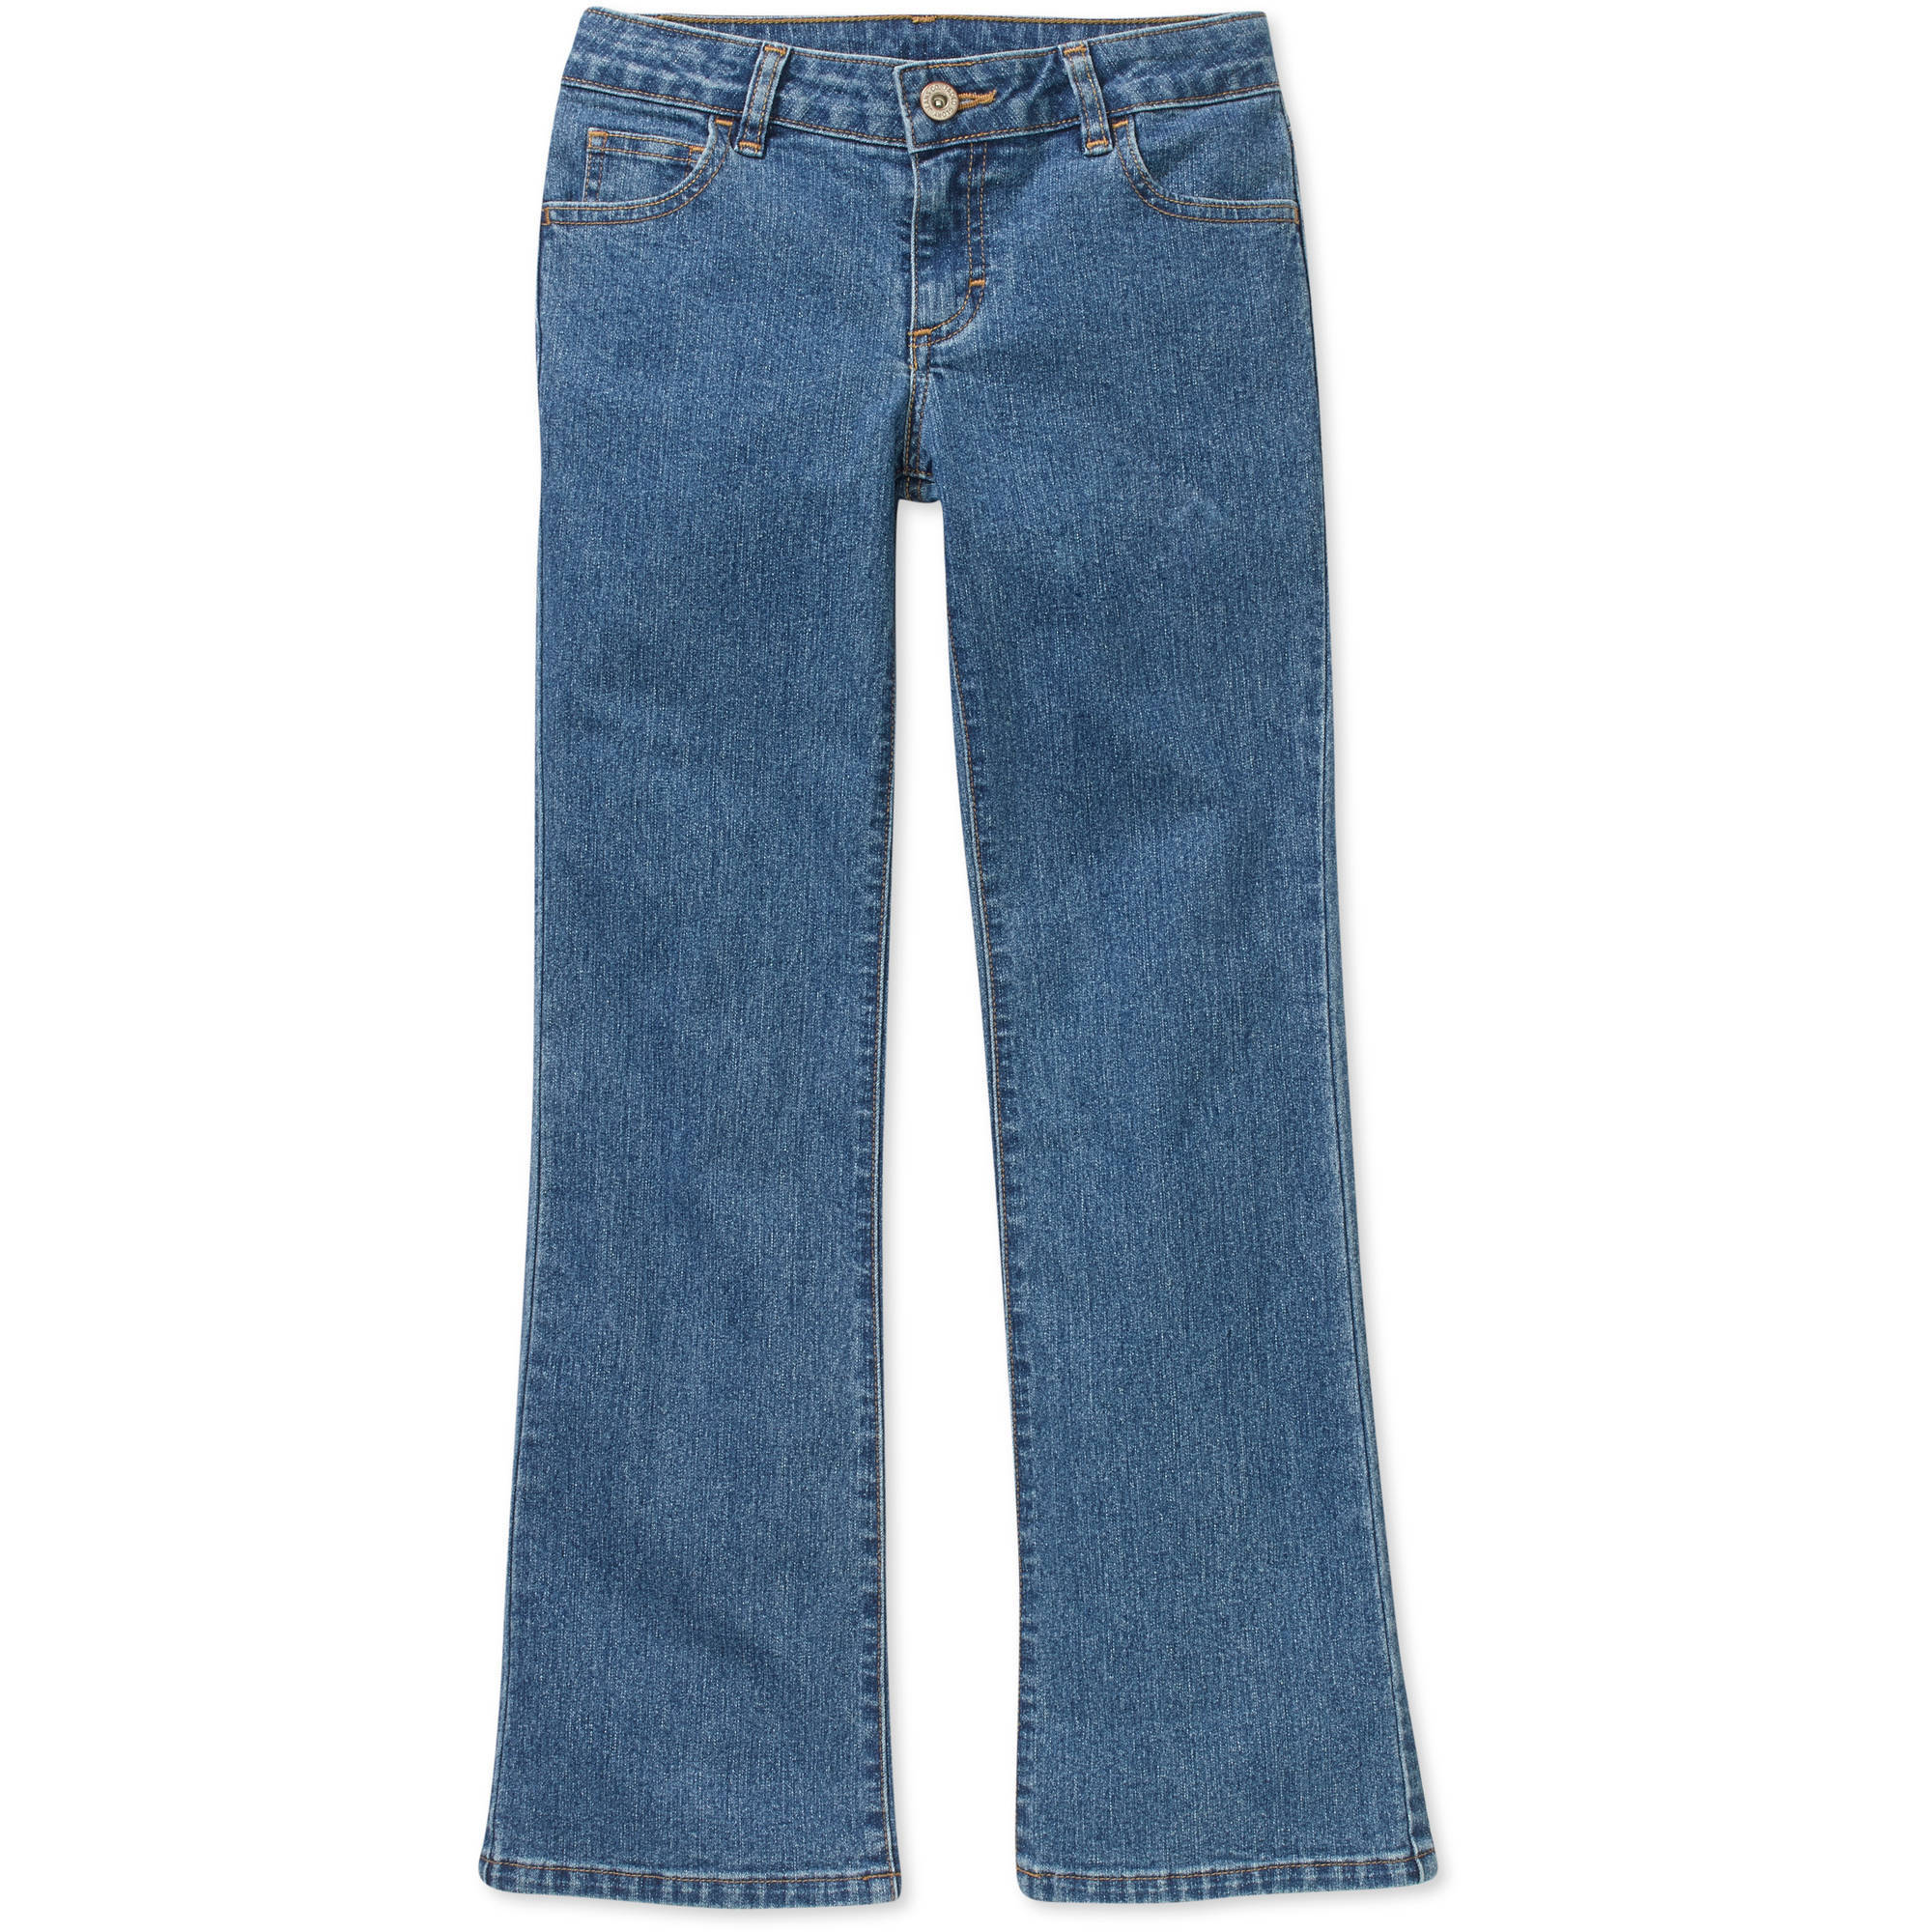 Faded Glory Girls' Bootcut Jeans